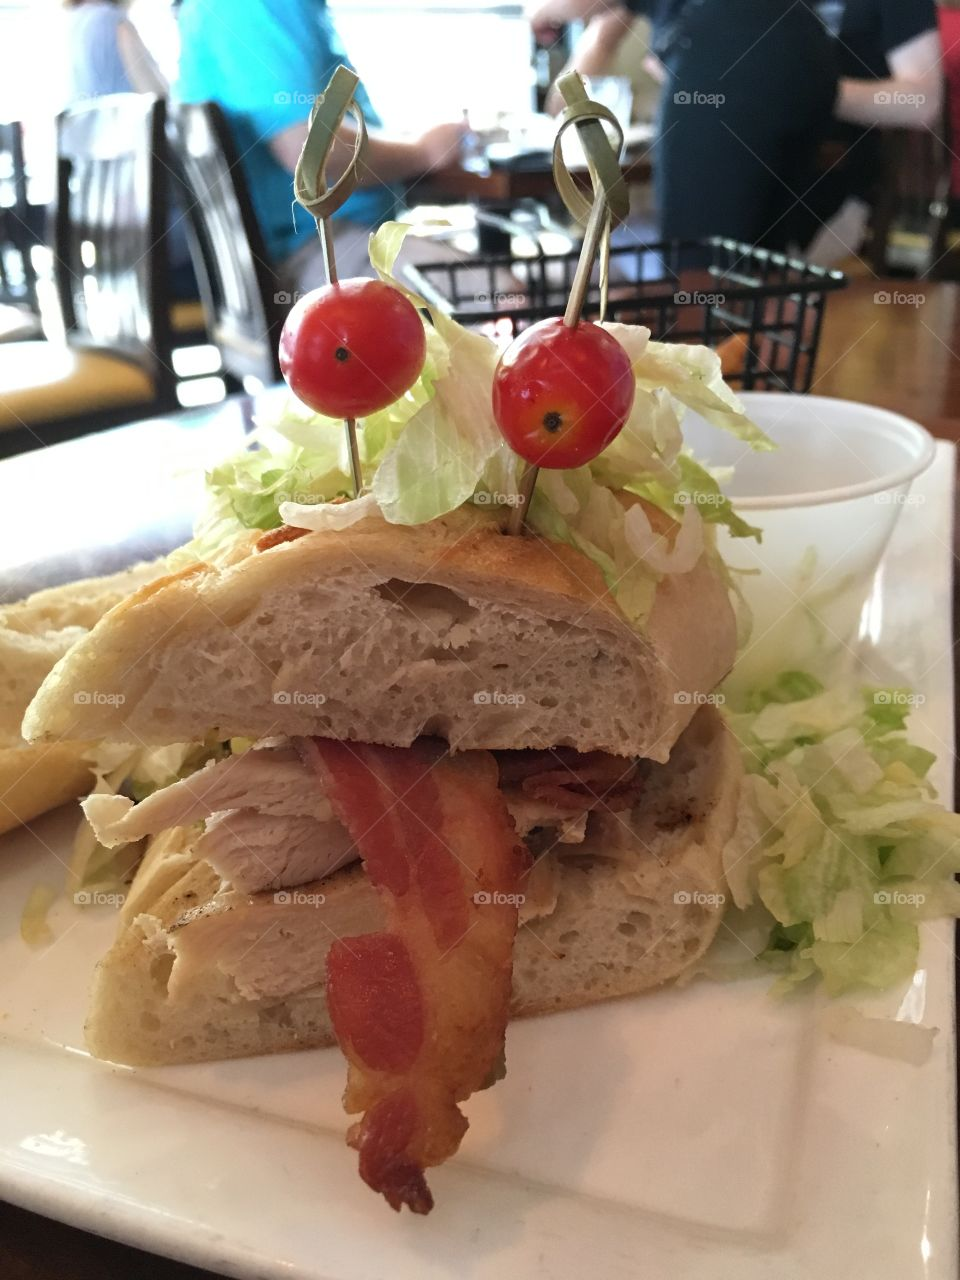 My favorite sandwich has a face and from Disney Springs in Florida